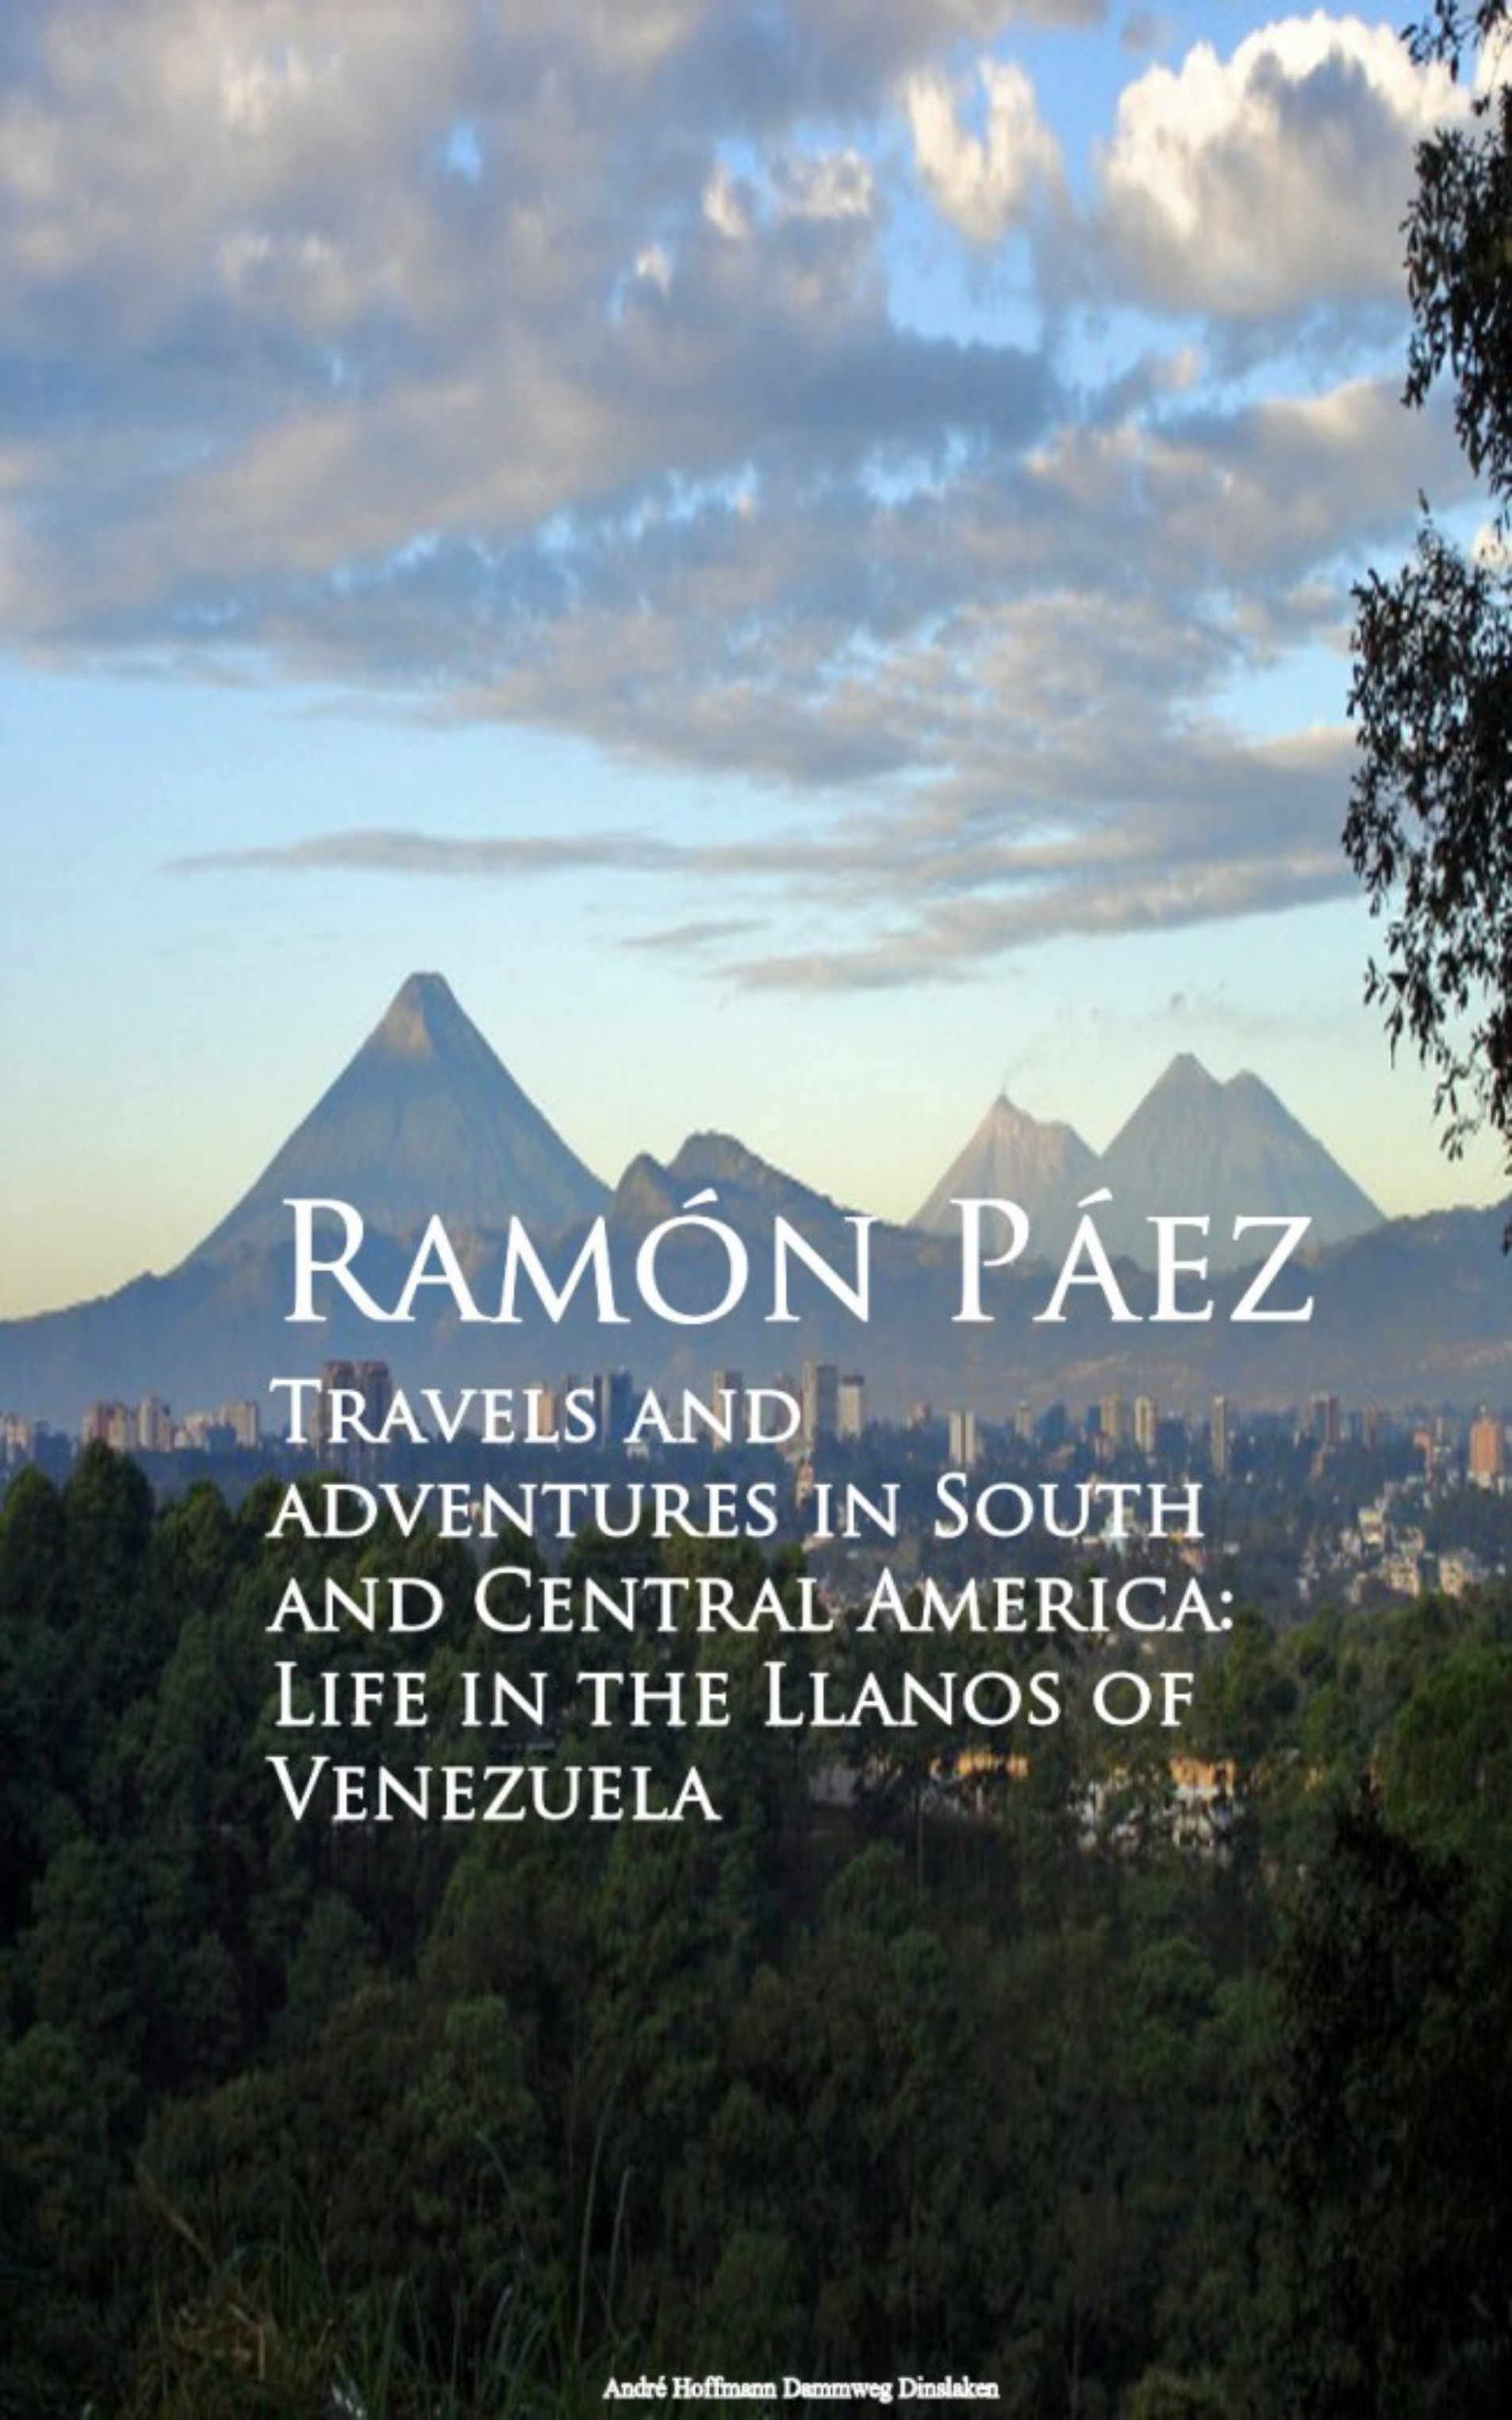 Ramón Páez Travels and adventures in South and Central